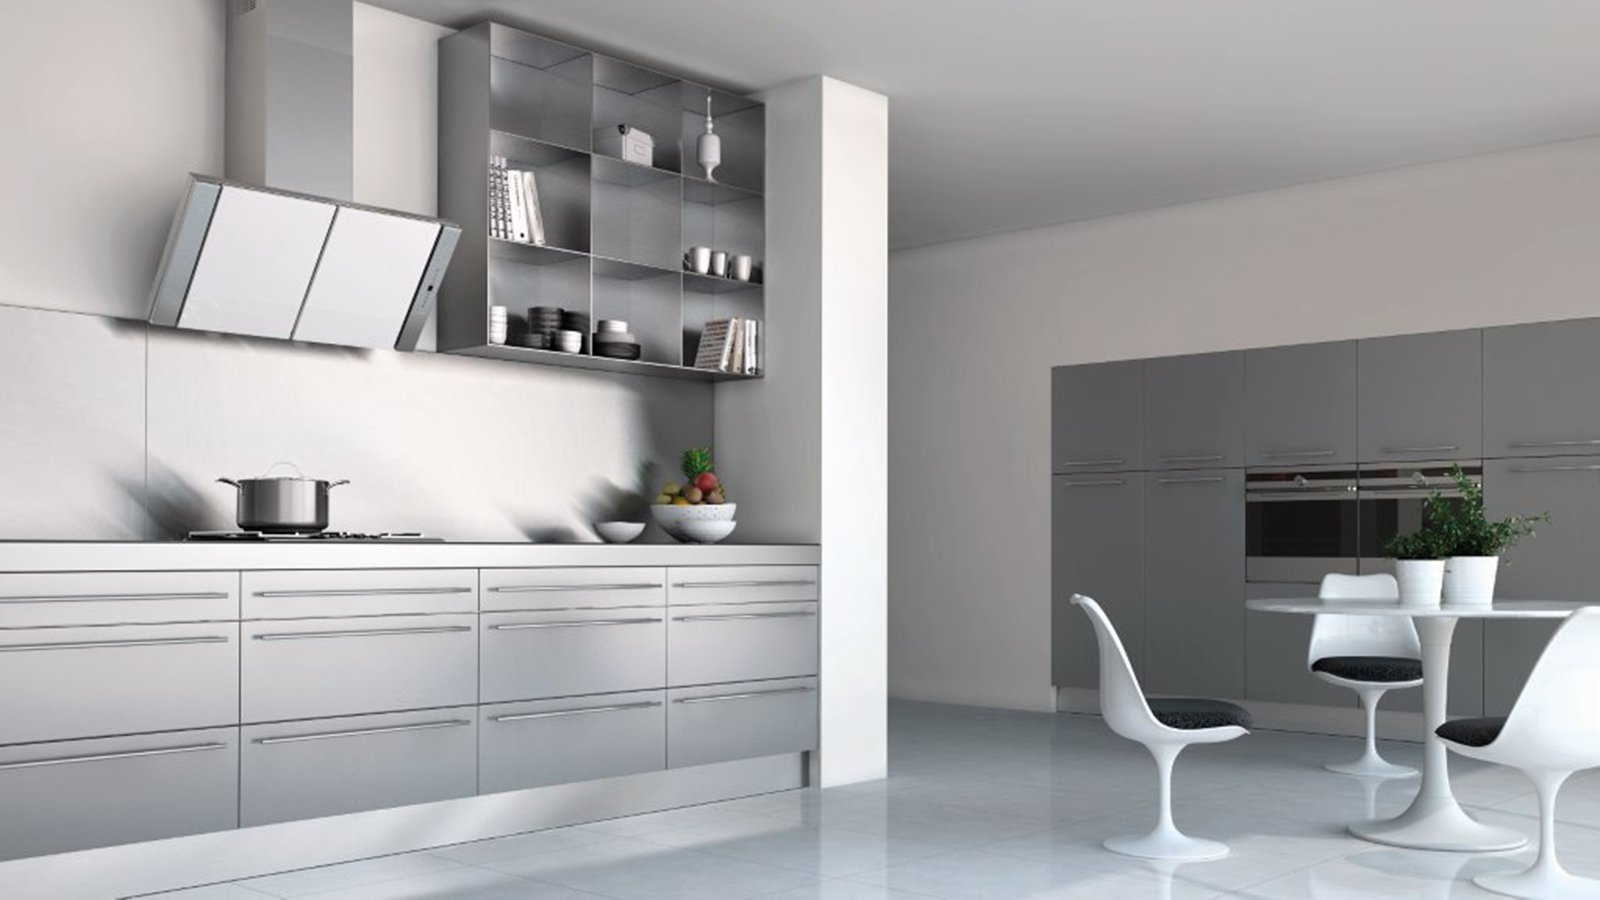 Cappe cucine moderne cappe w with cappe cucine moderne for Cappa sospesa per isola